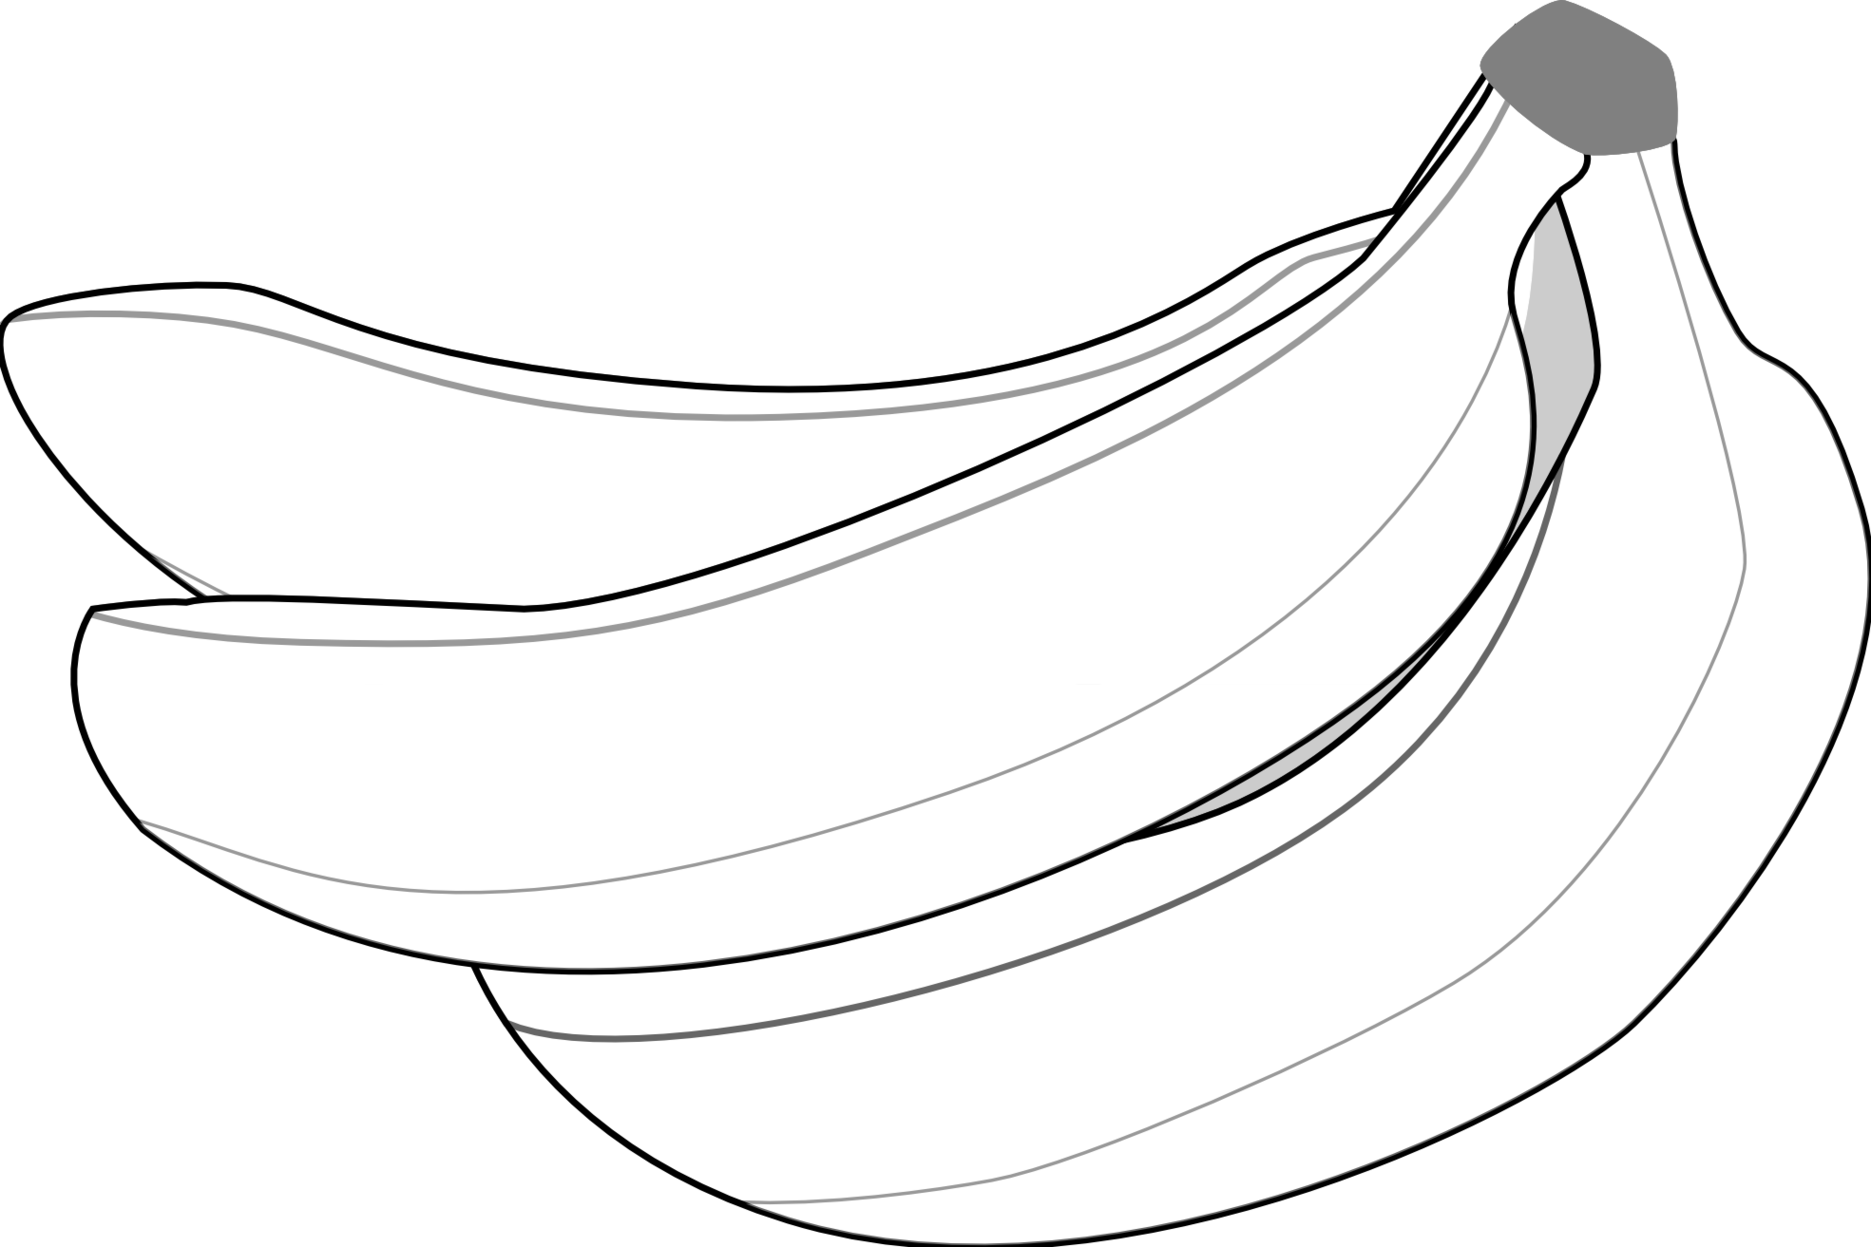 graphic black and white stock Bananas vector black and white. Banana clipart free download